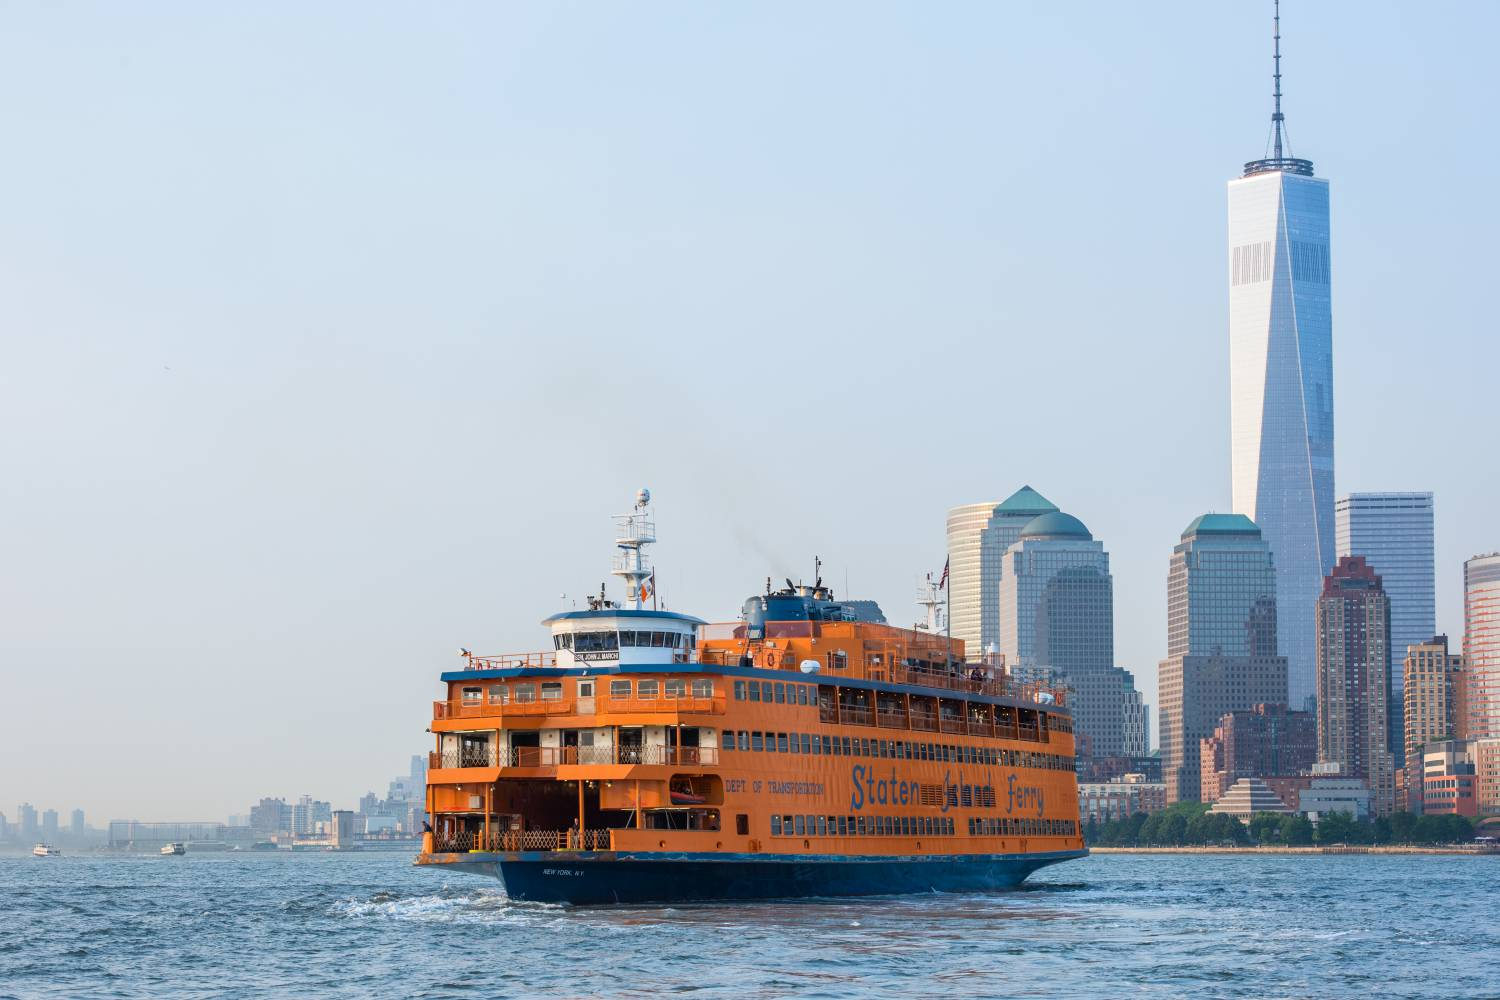 staten island ferry guide: enjoy statue of liberty & harbor views